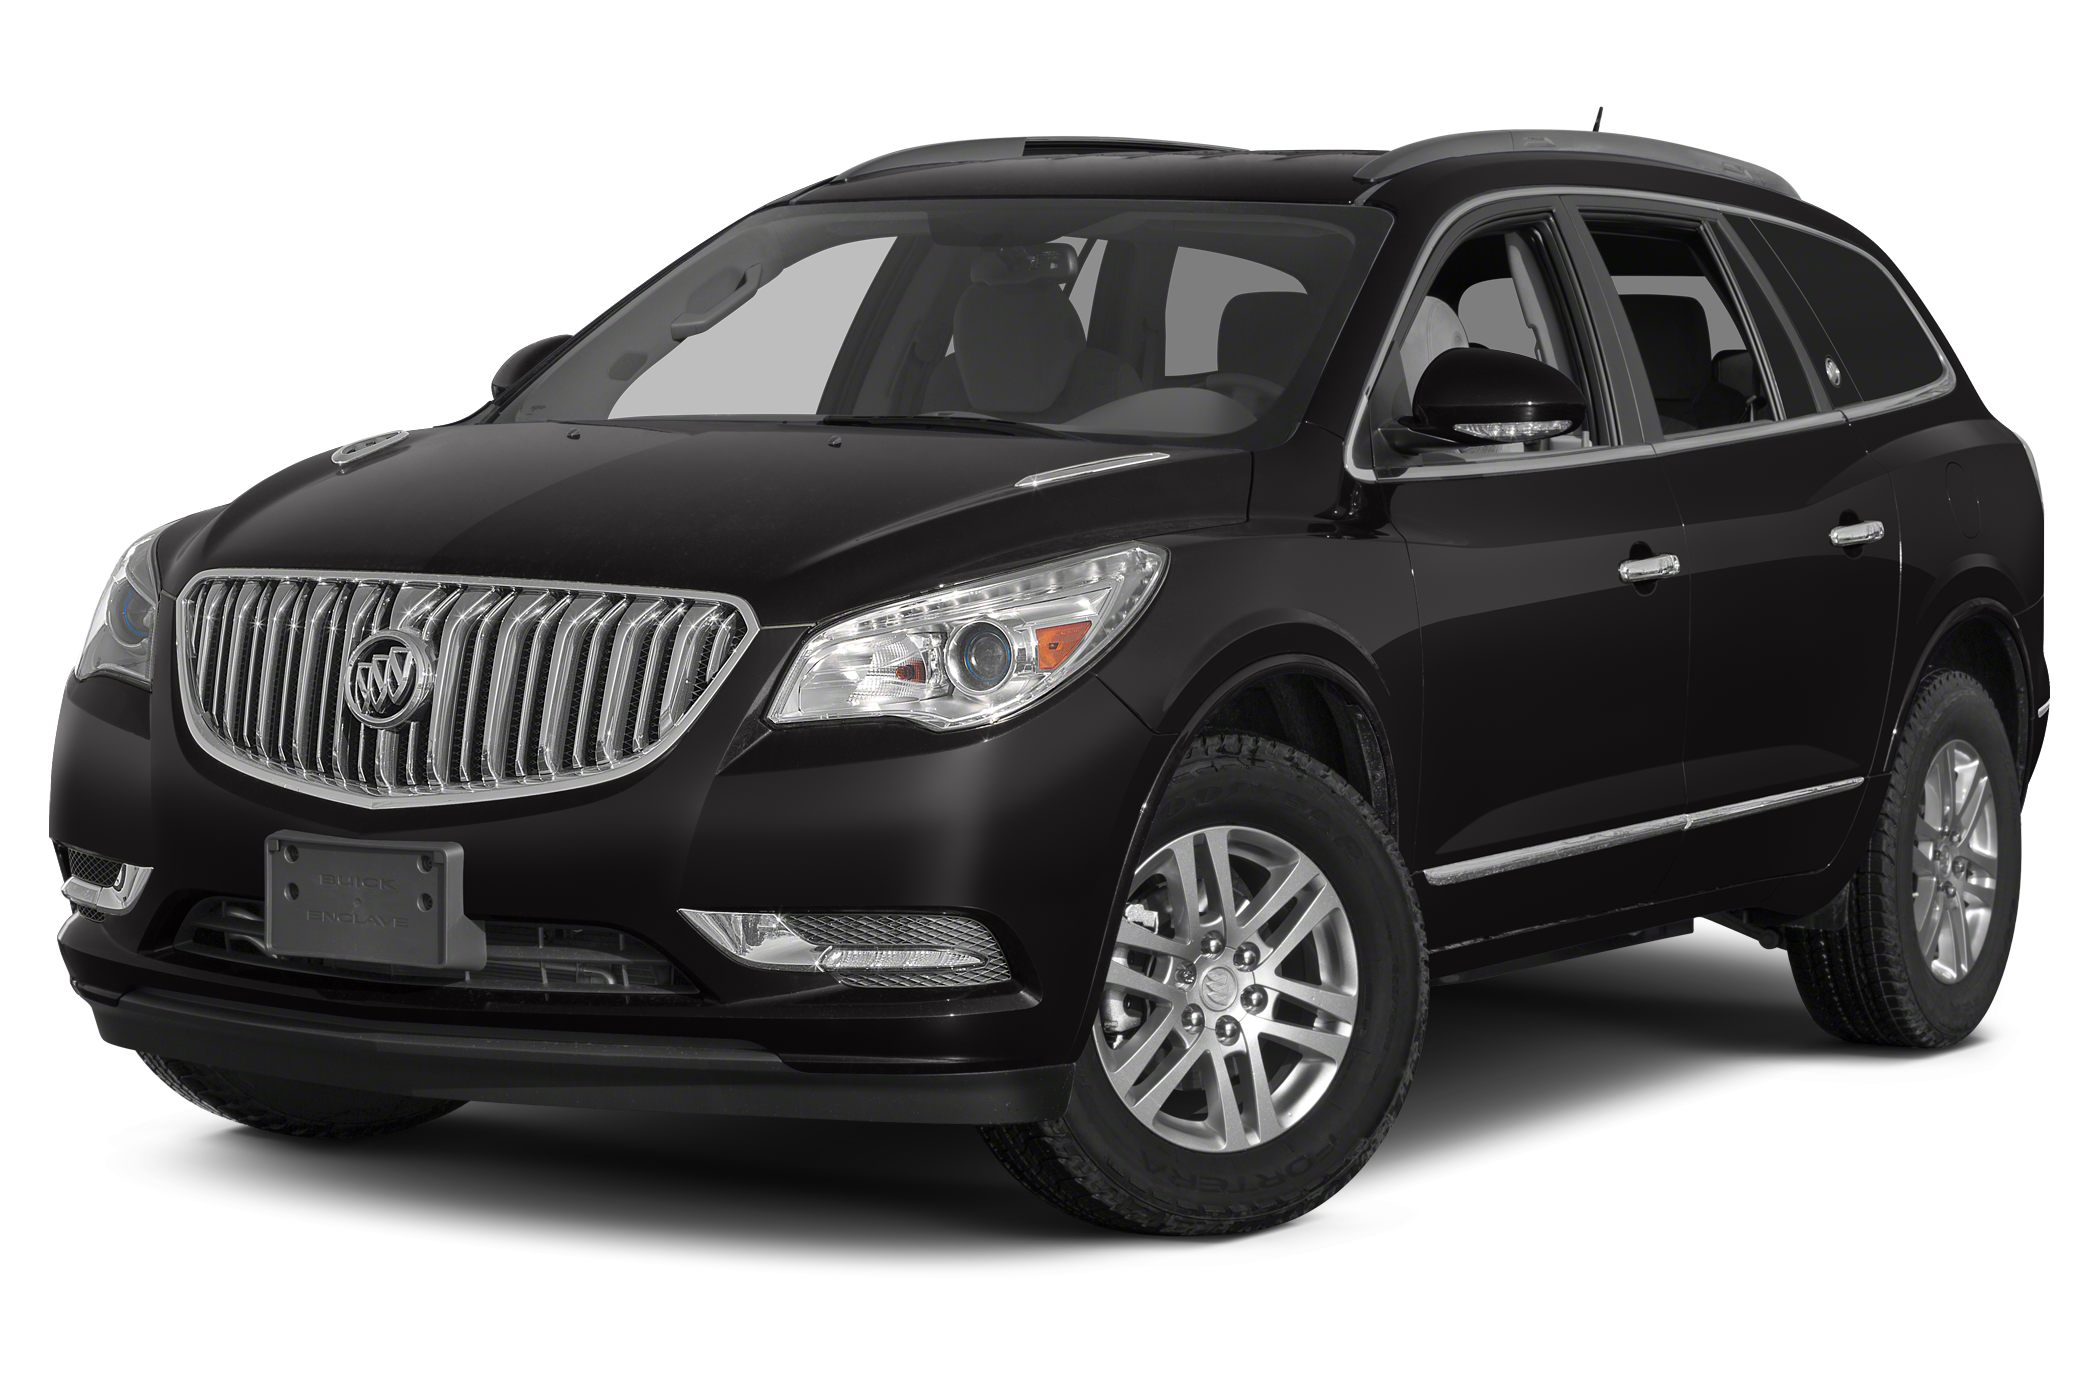 2014 Buick Enclave Leather SUV for sale in Claremore for $34,491 with 33,240 miles.